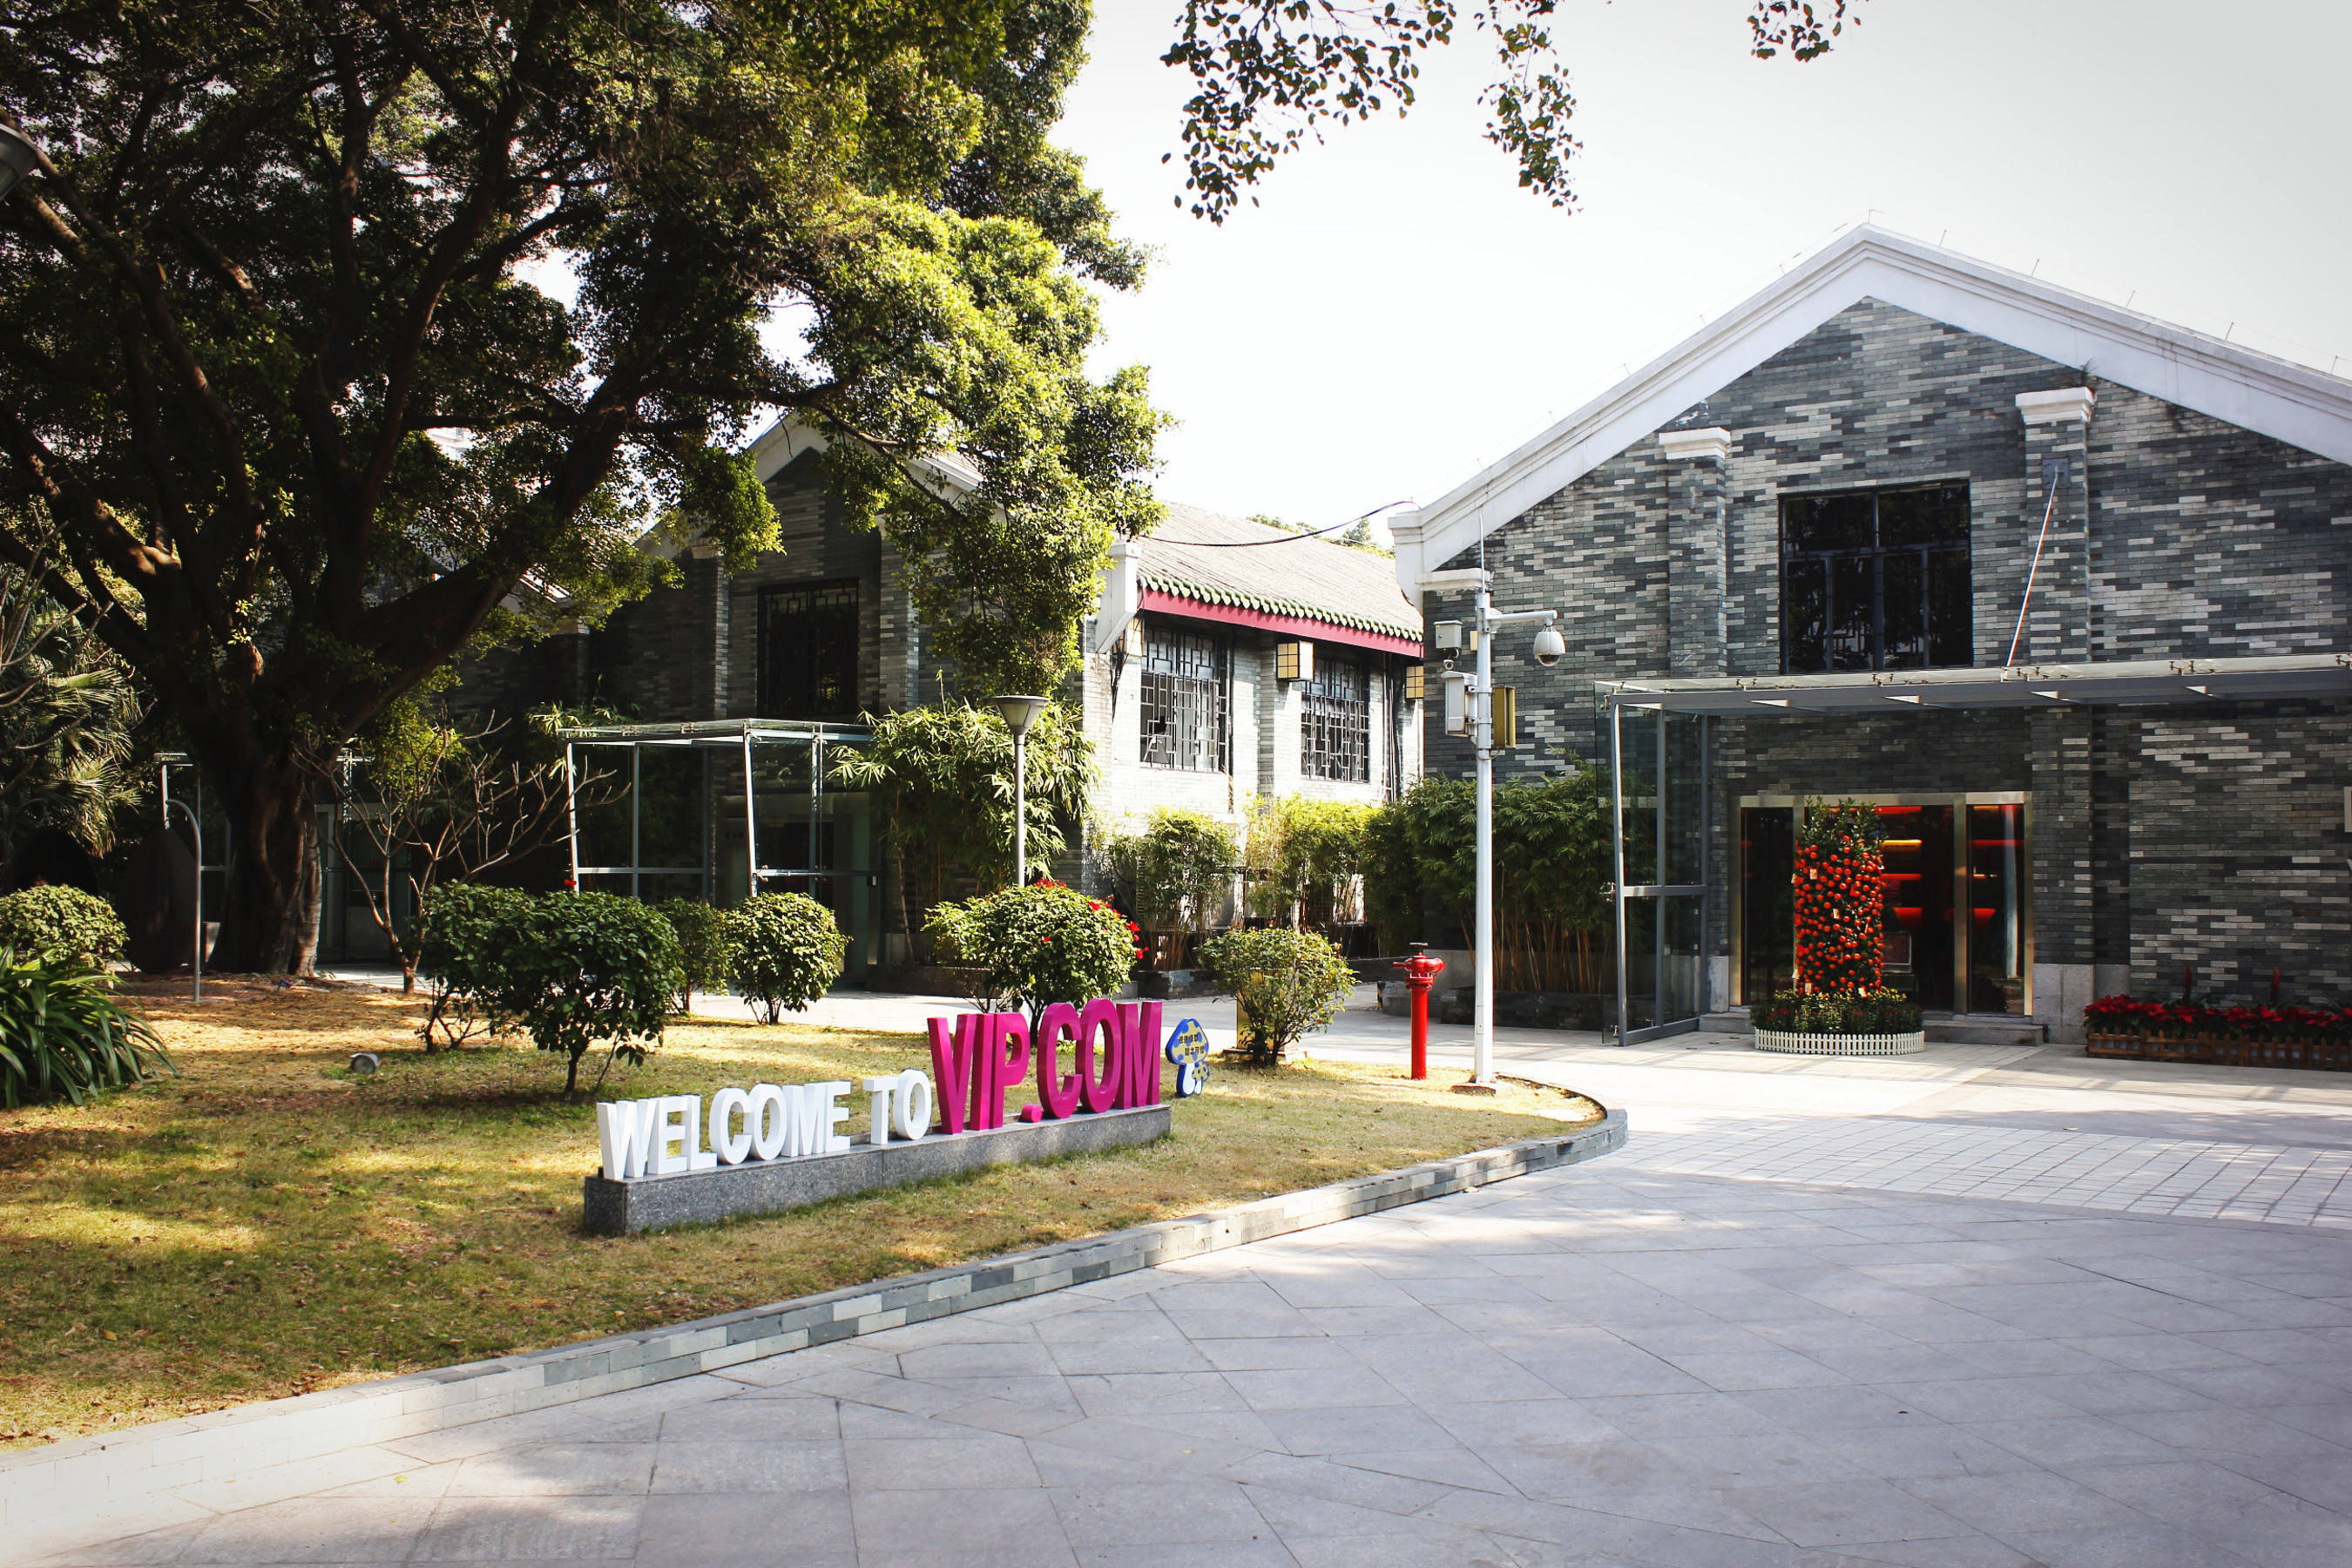 Vipshop, China's leading online discount retailer for brands in China, has operations in several cities around the country. The company's headquarters, pictured above, is located in Guangzhou, Guangdong province.